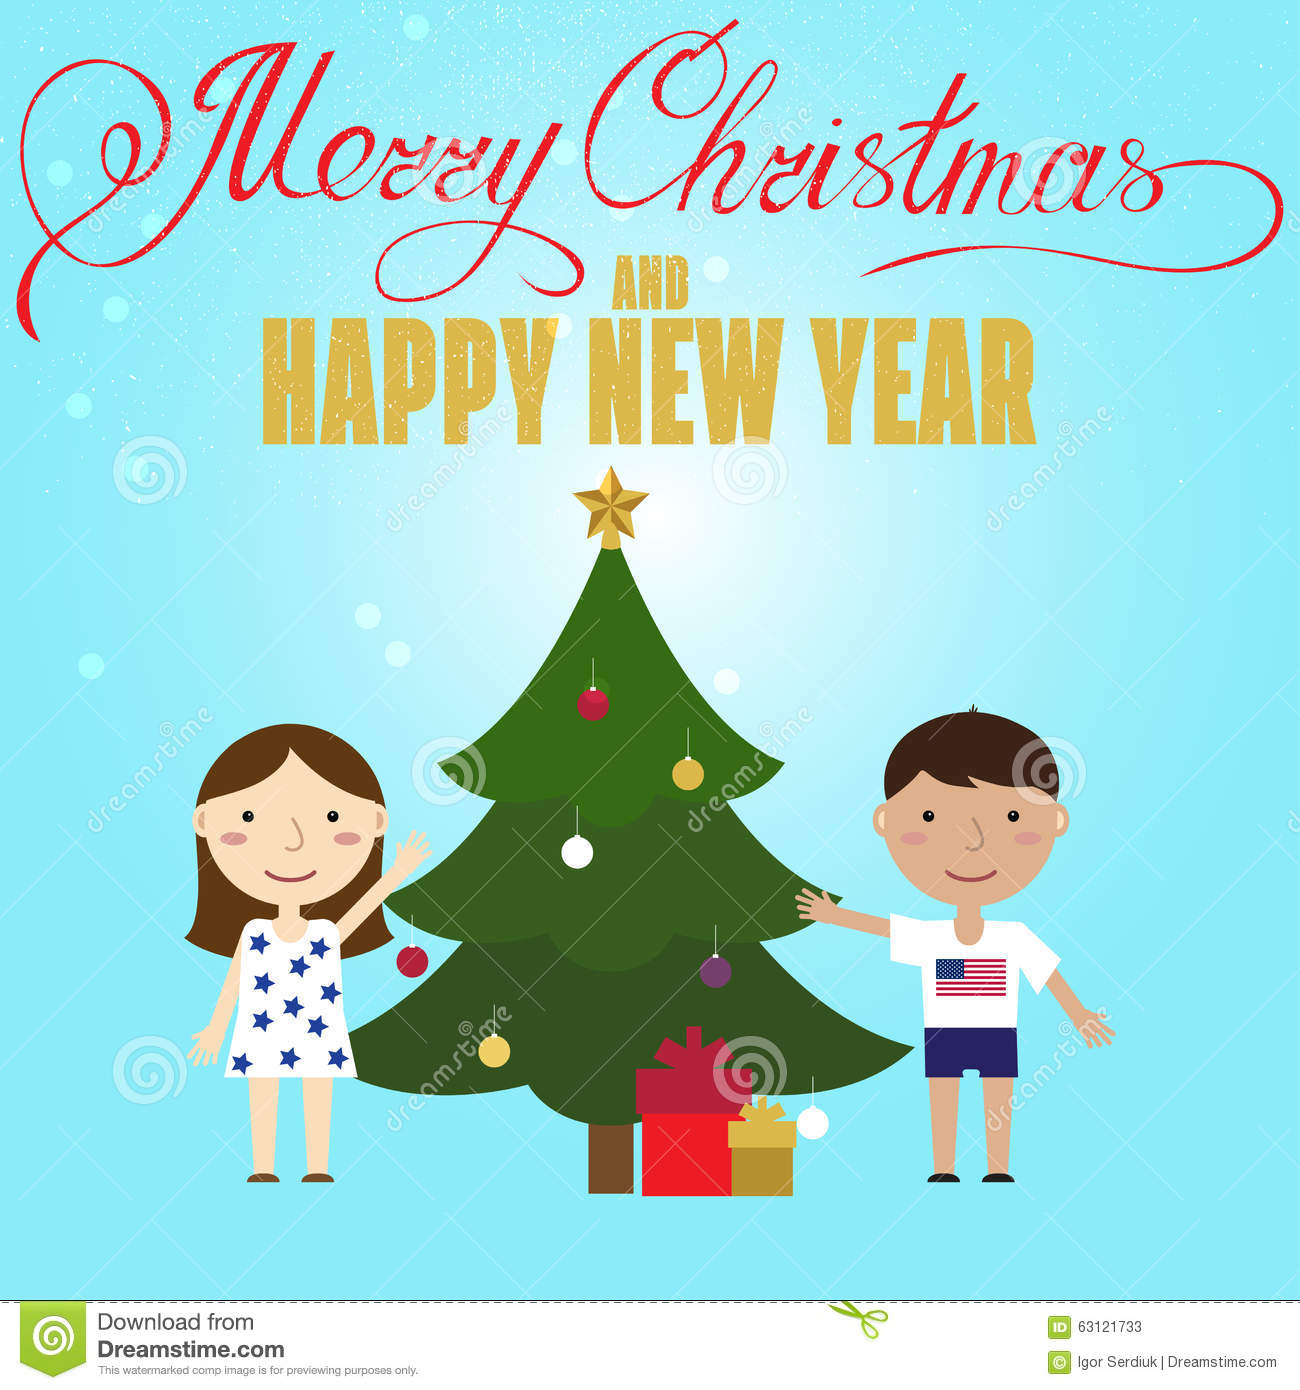 Xmas poster design - Christmas Poster Design With Children And Christmas Tree Stock Vector